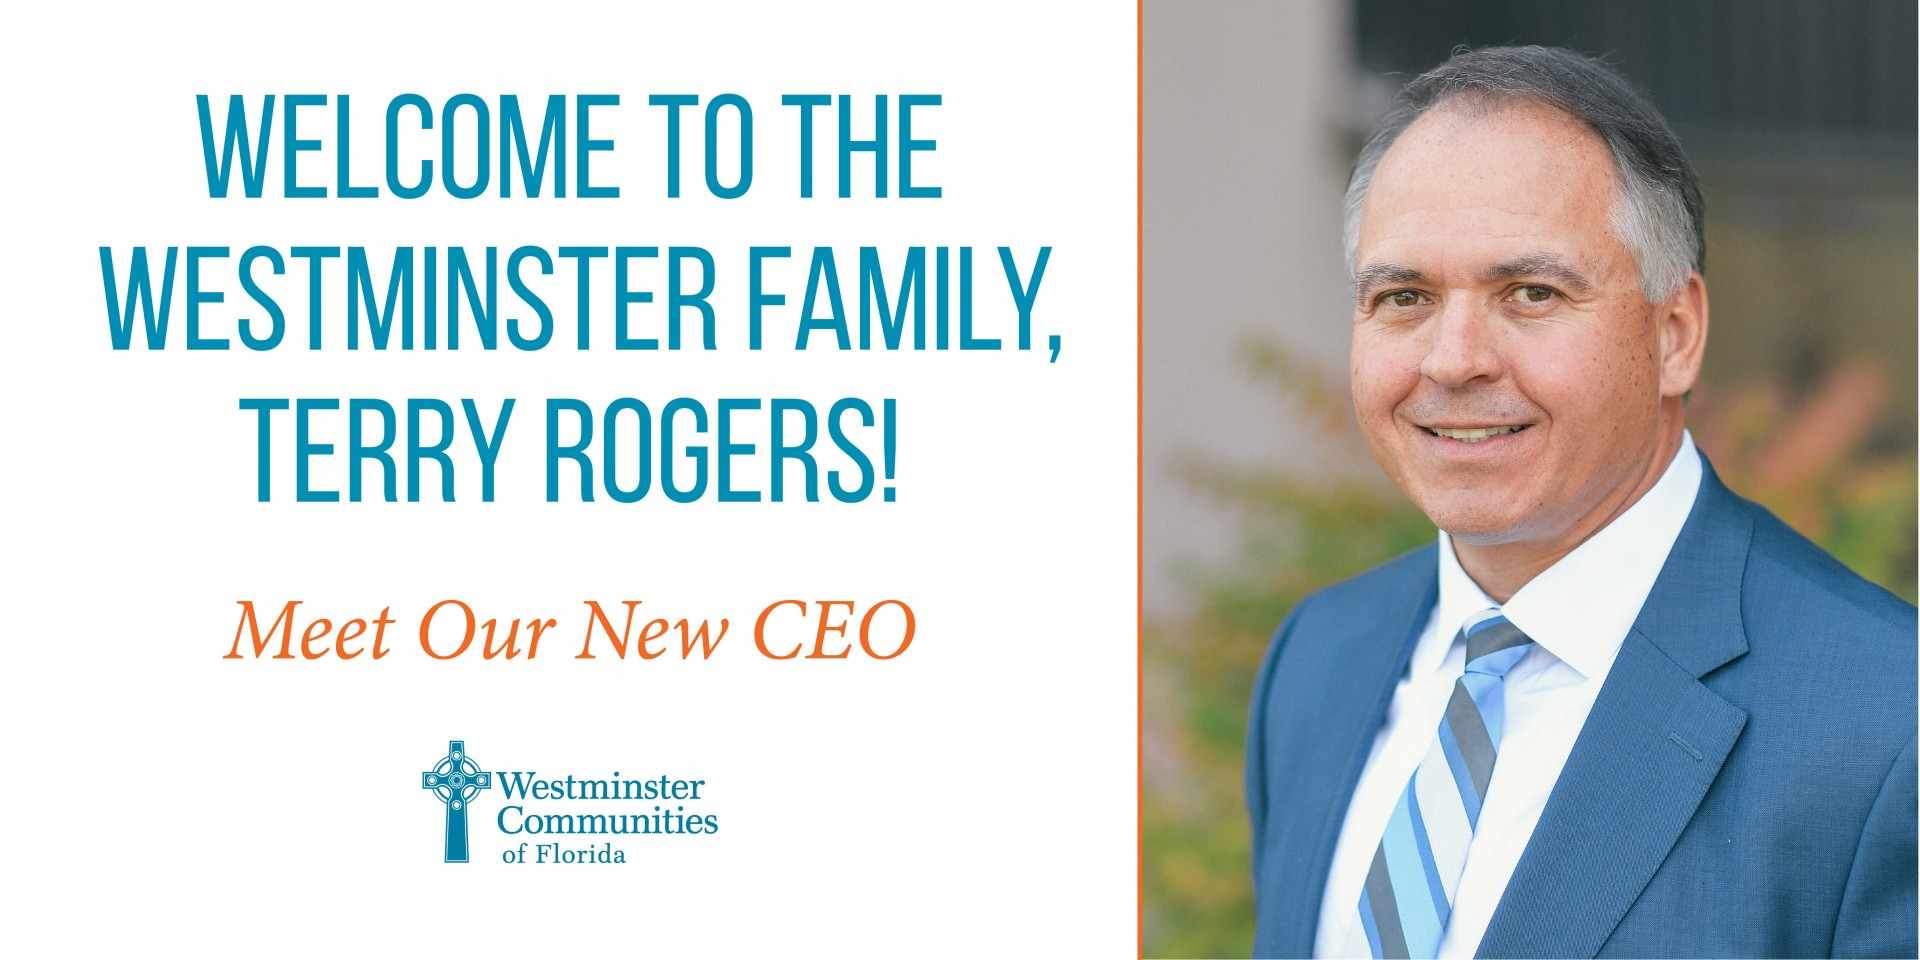 Welcome Terry Rogers, to the Westminster Family! Meet Our New CEO